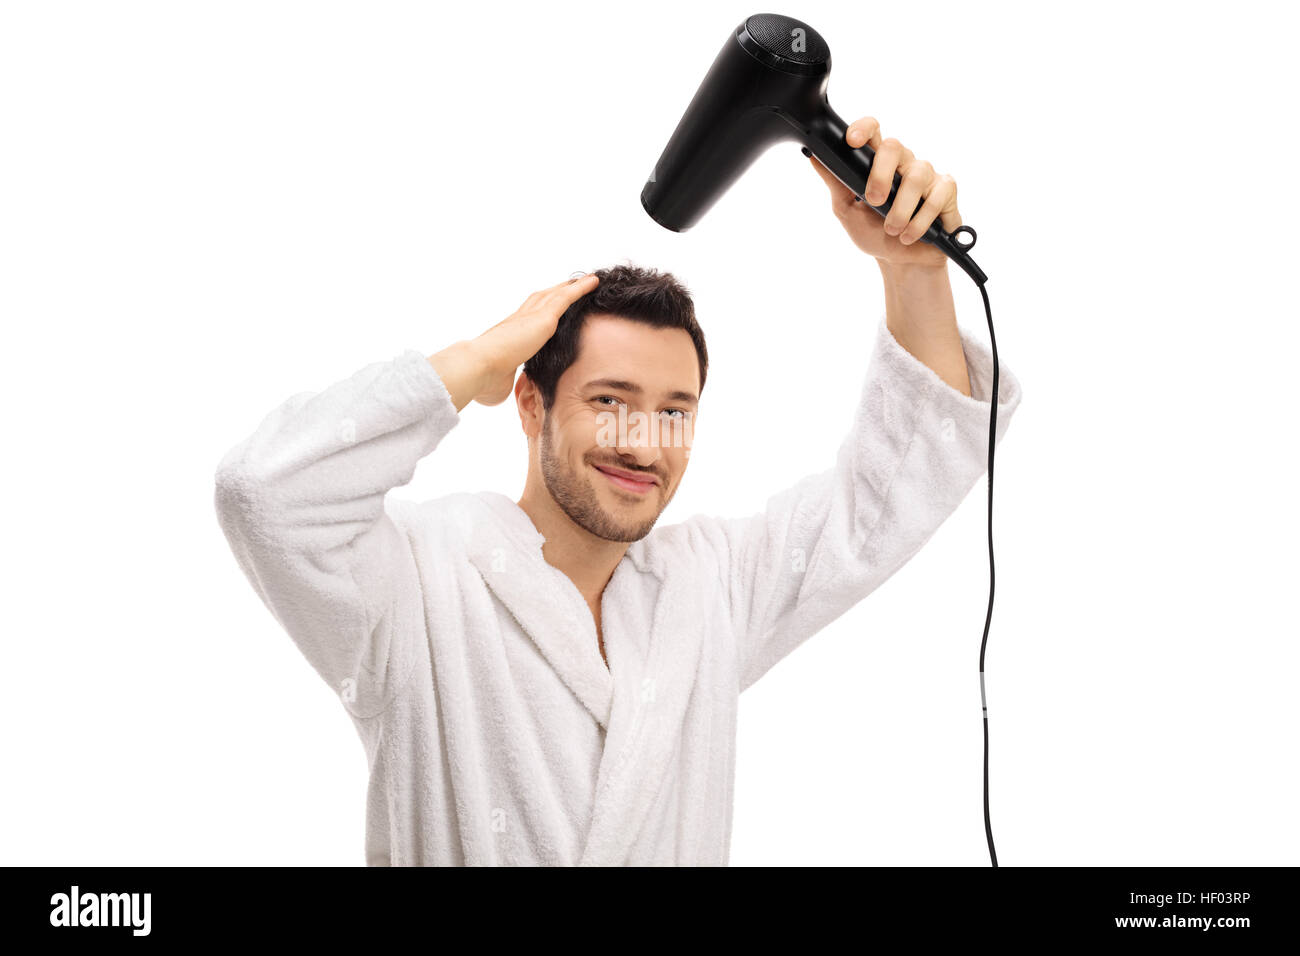 Young guy in a bathrobe drying his hair with a hairdryer isolated on white background - Stock Image